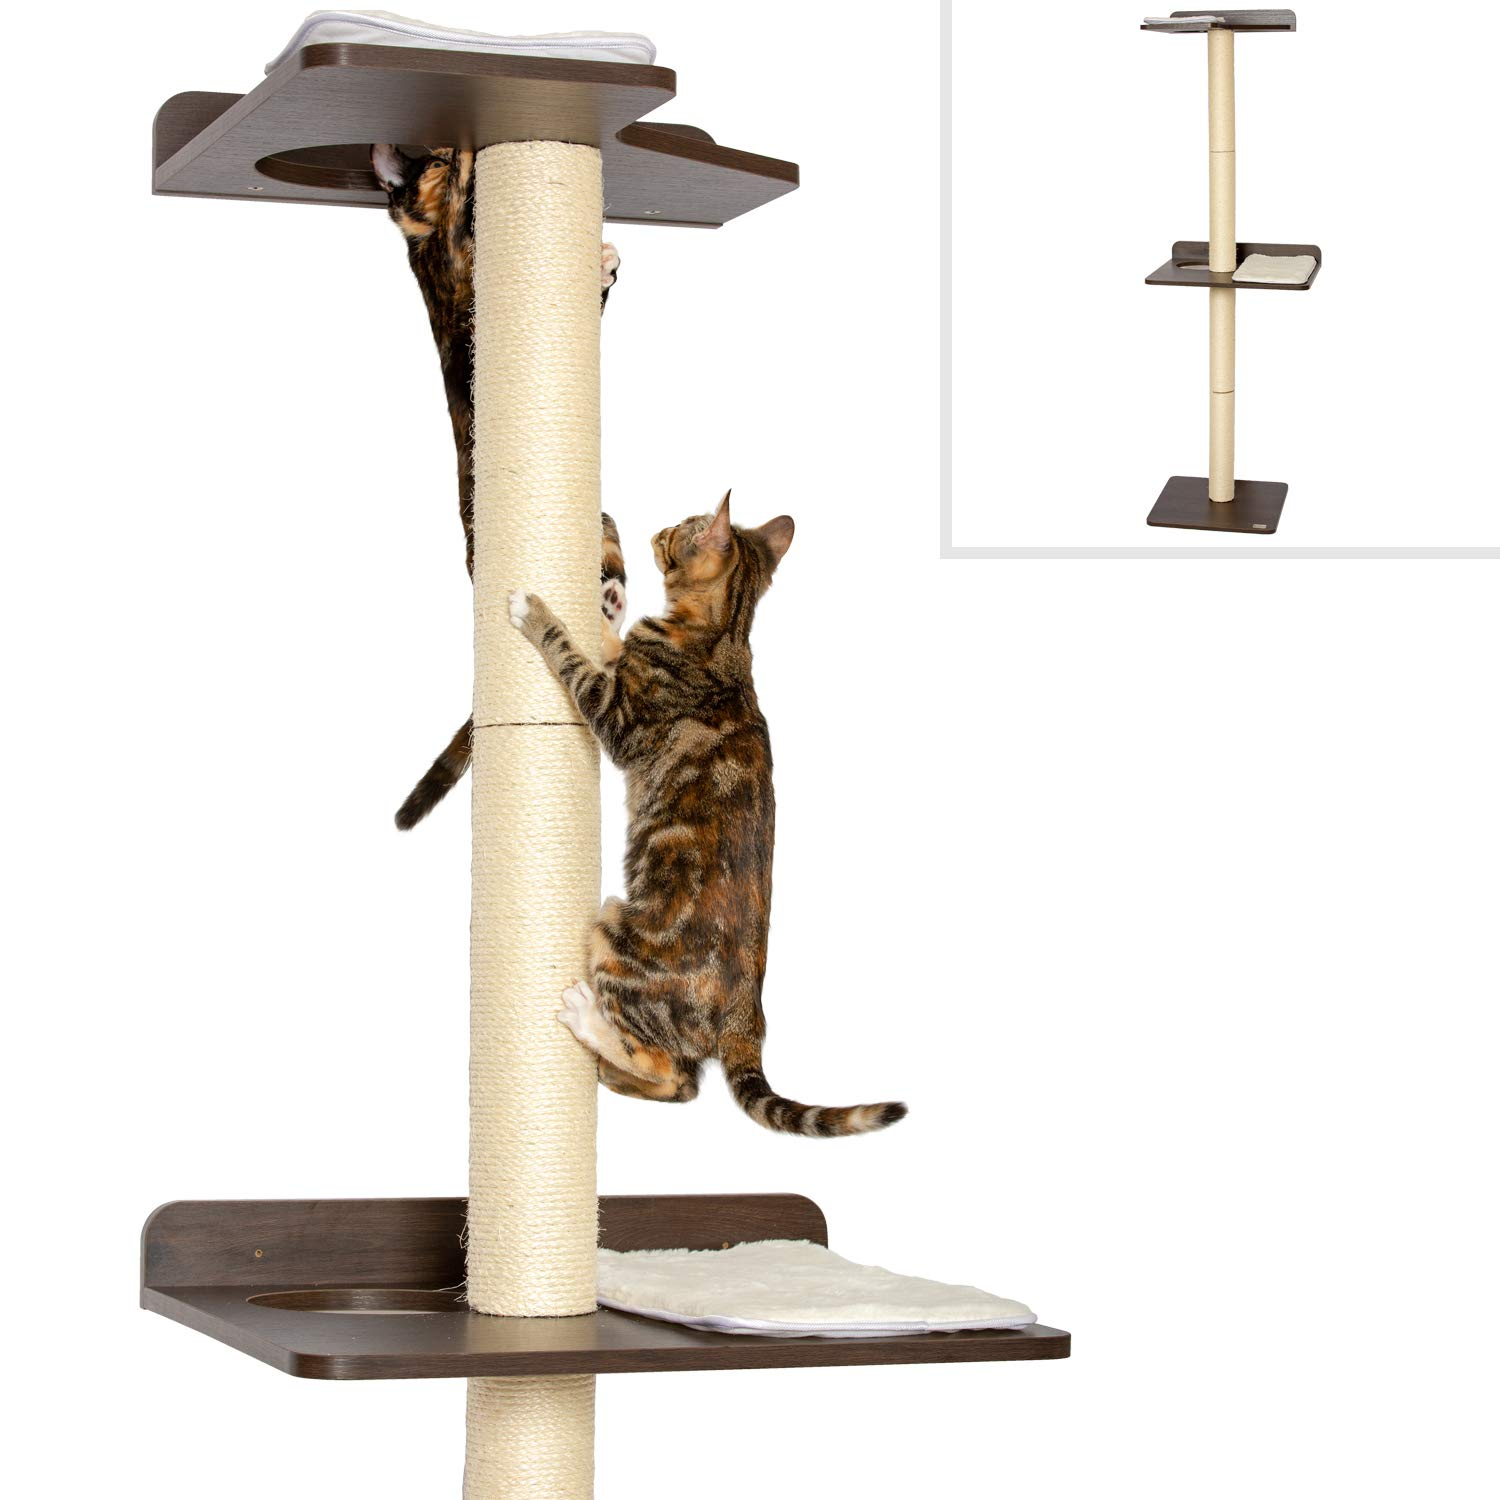 PetFusion Ultimate Cat Climbing Tower & Activity Tree. (Tall sisal scratching posts, modern cat furniture)